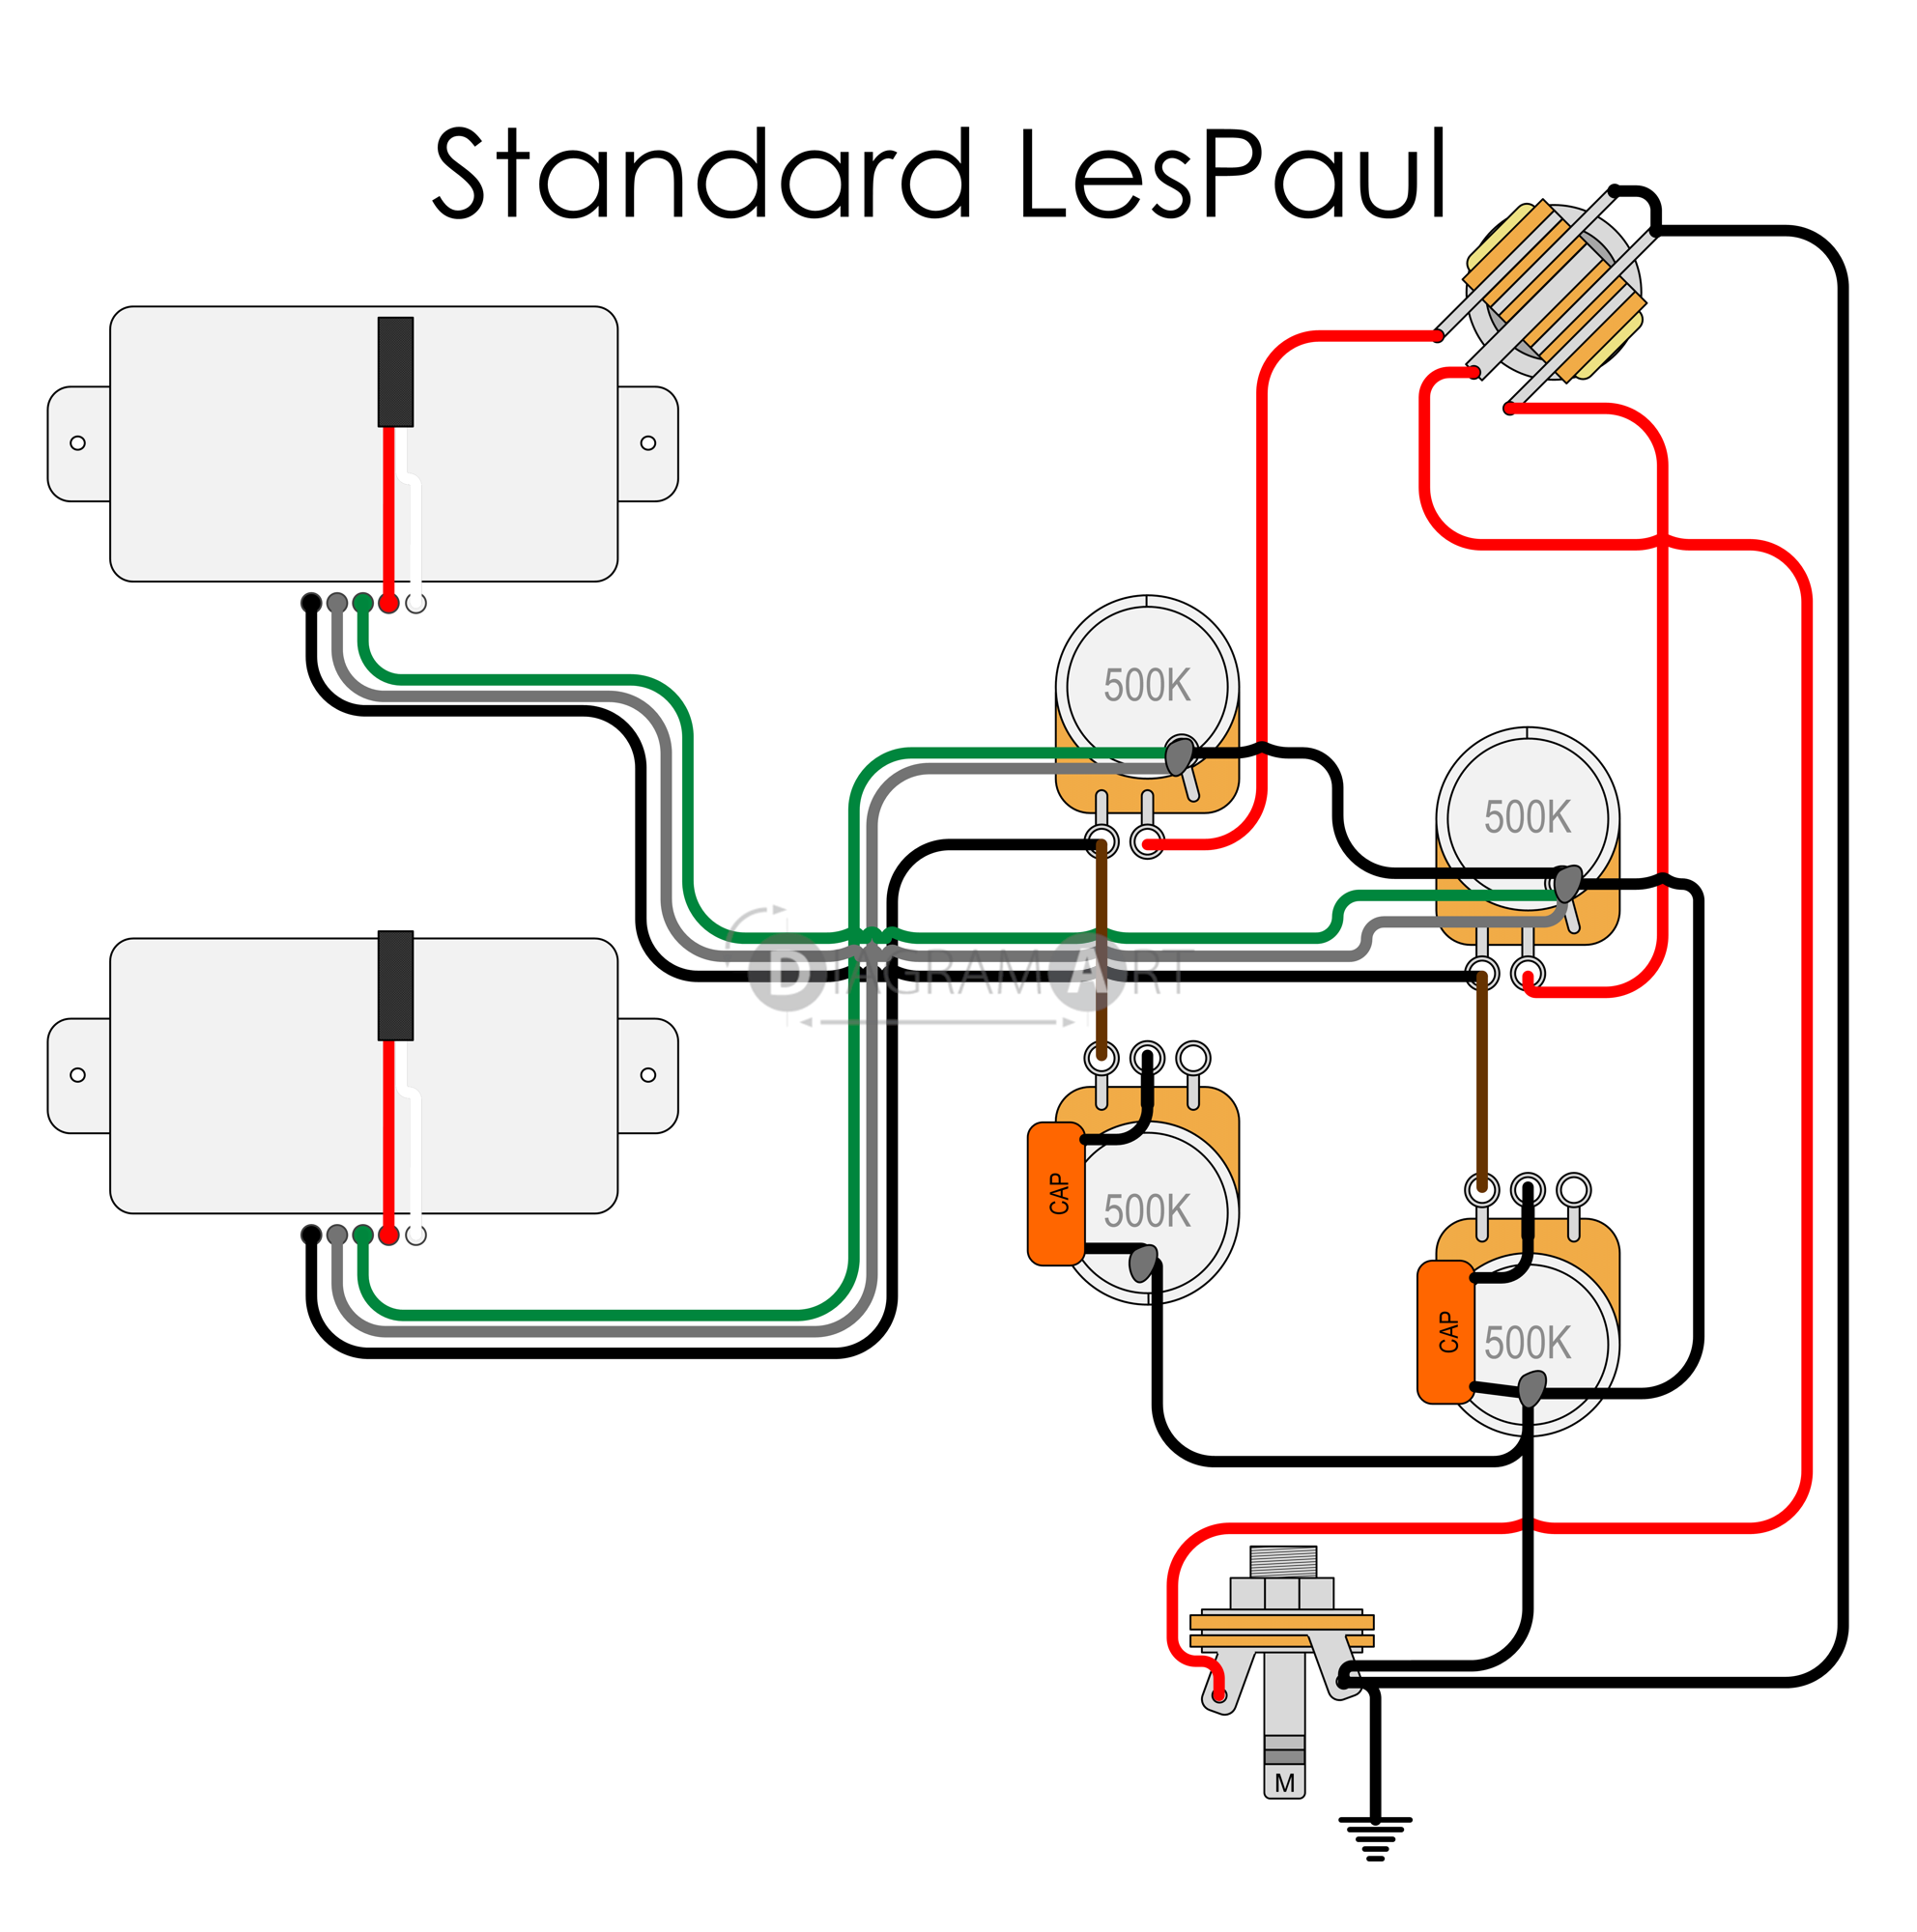 2012 Les Paul Standard Wiring Diagram Free For You Guitar Two Humbuckers Along With 2 Humbucker Expert Schematics Diagrams Gibson